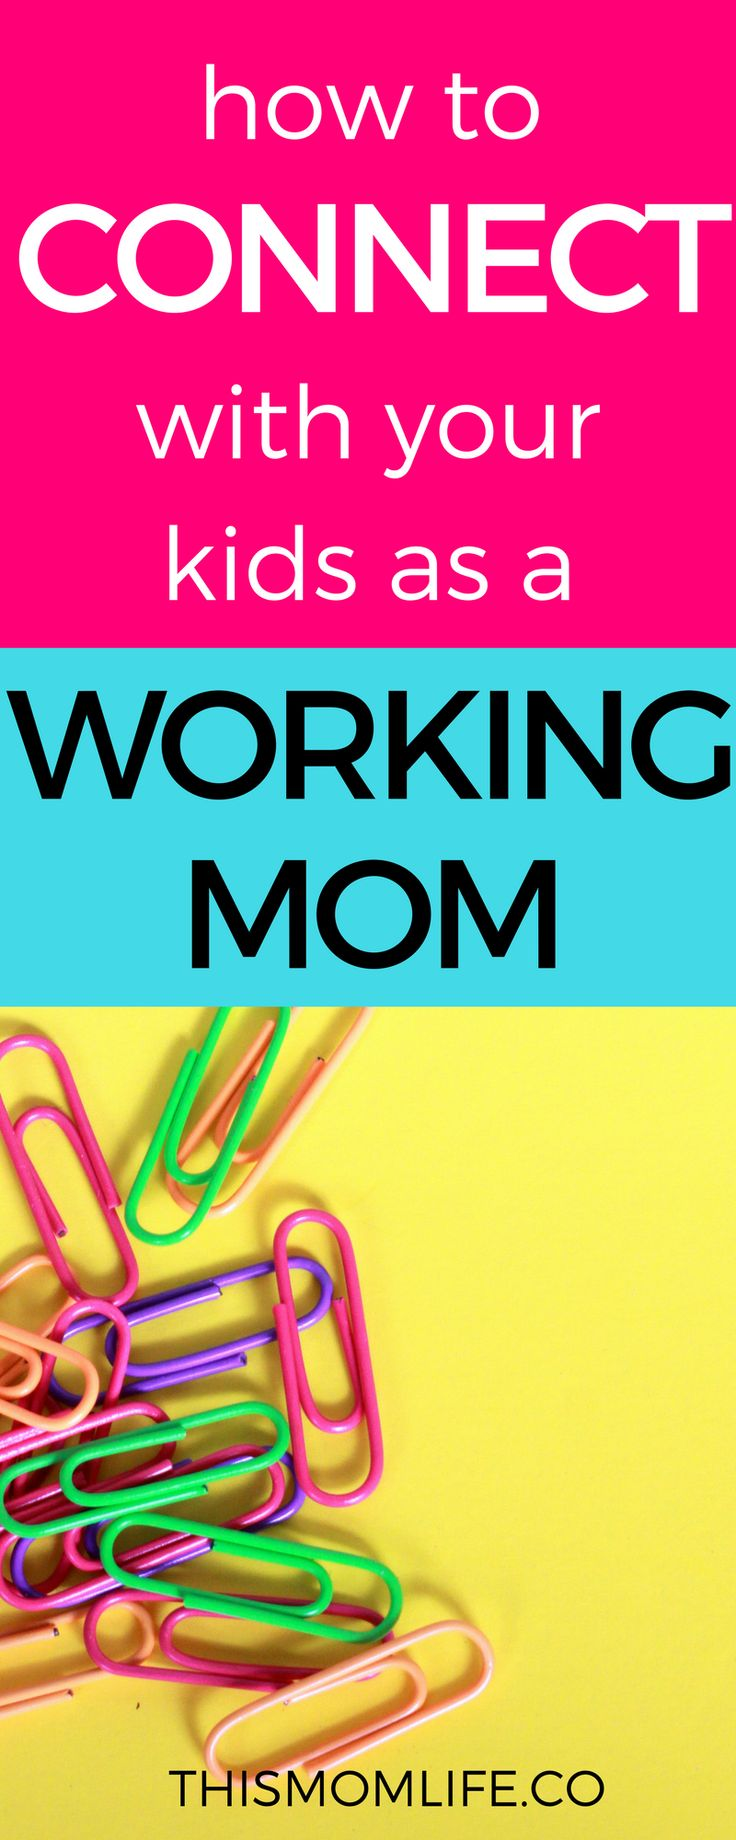 10 working mom tips for balancing work and family